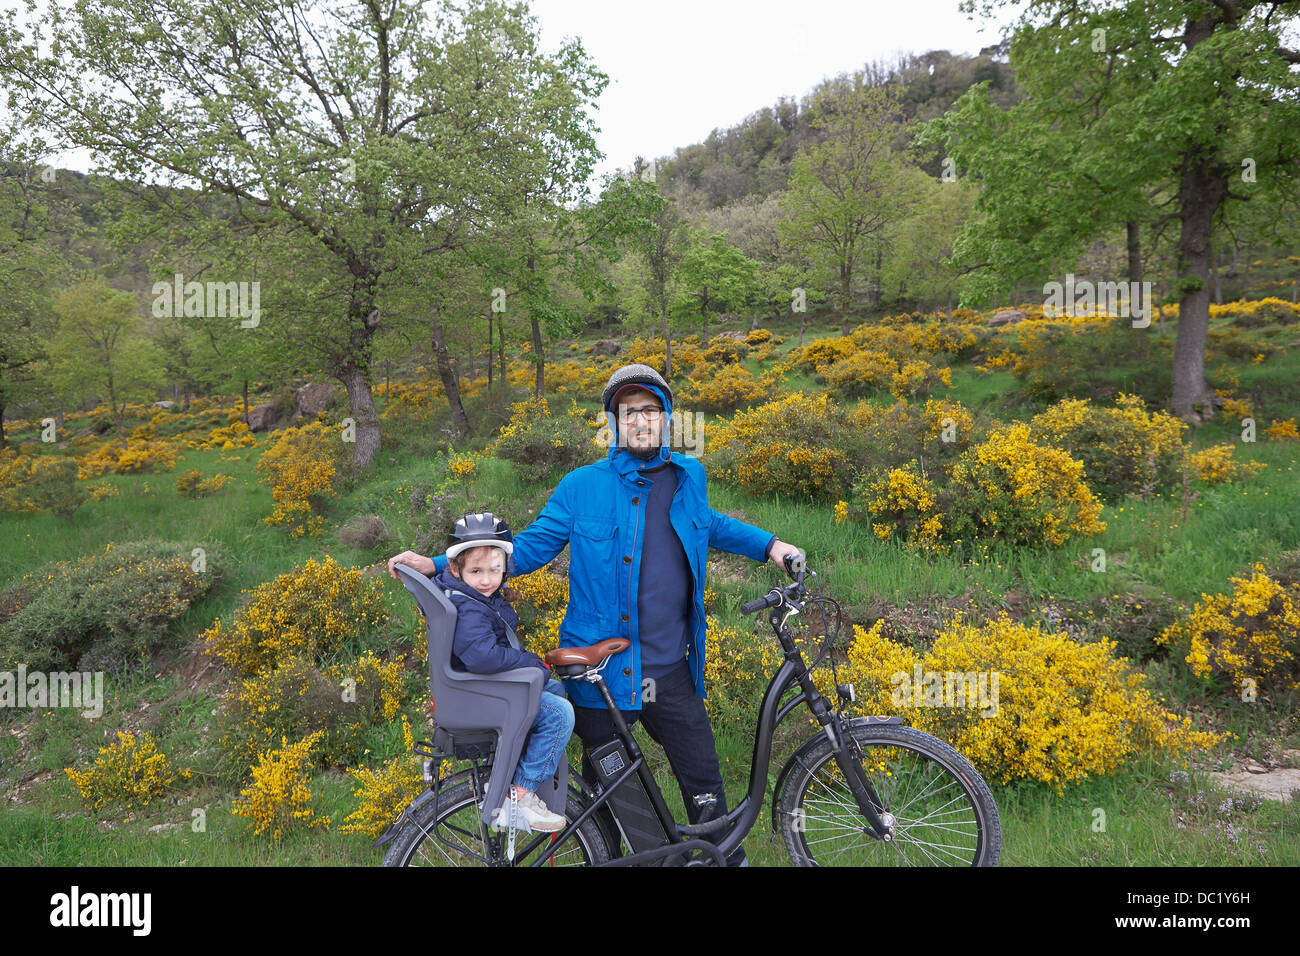 Portrait of father and young daughter on bike - Stock Image